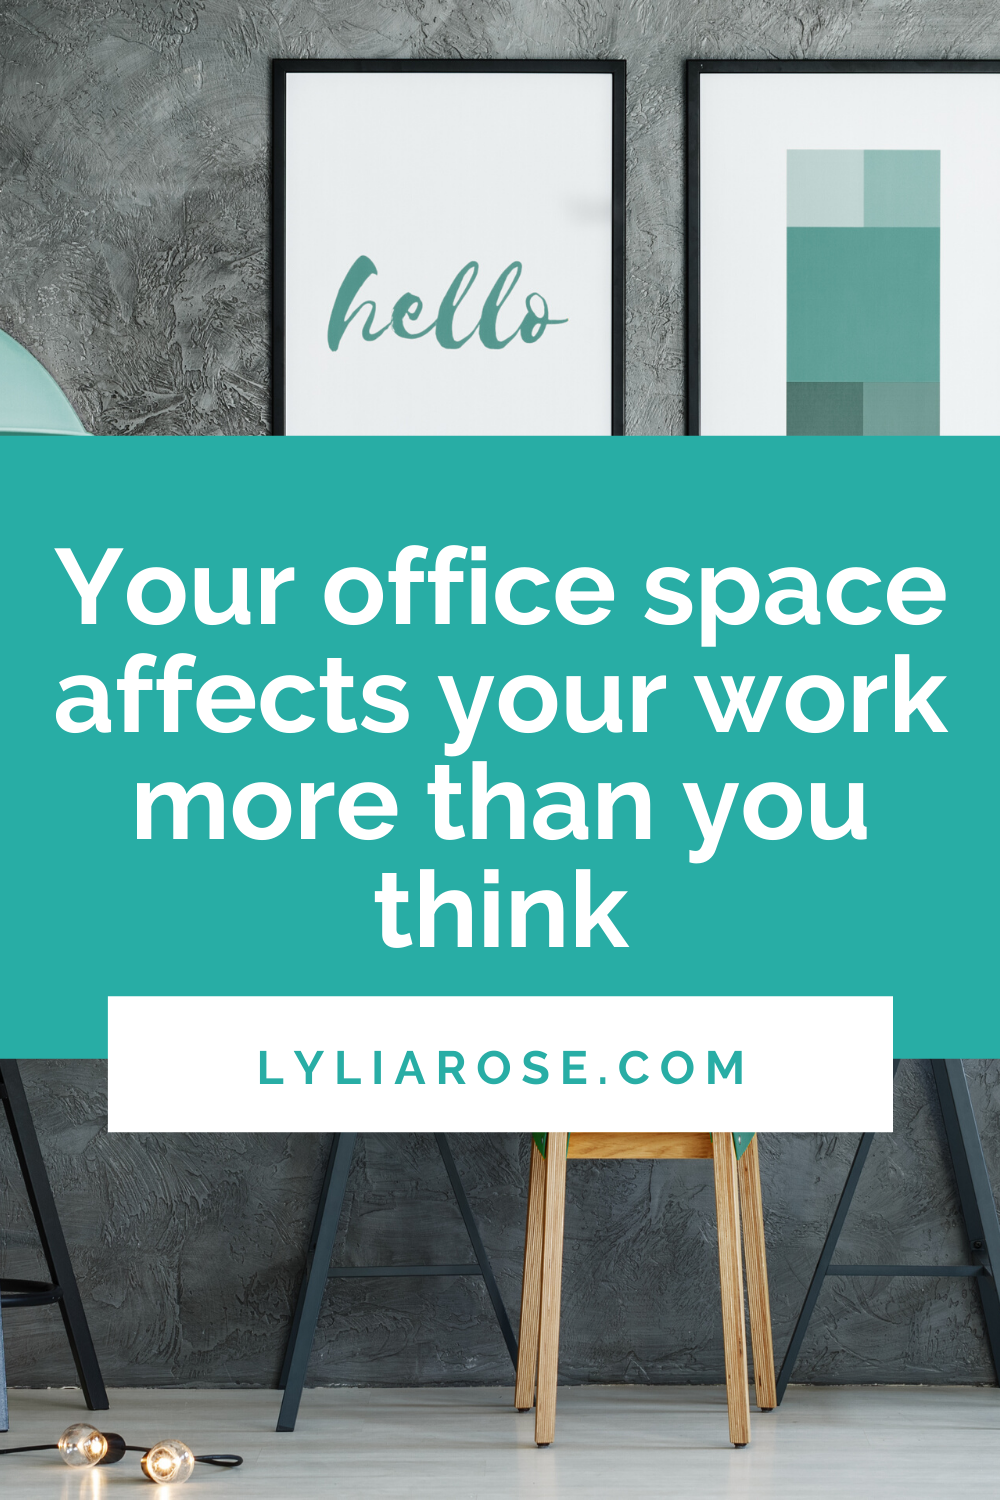 Your office space affects your work more than you think (2)